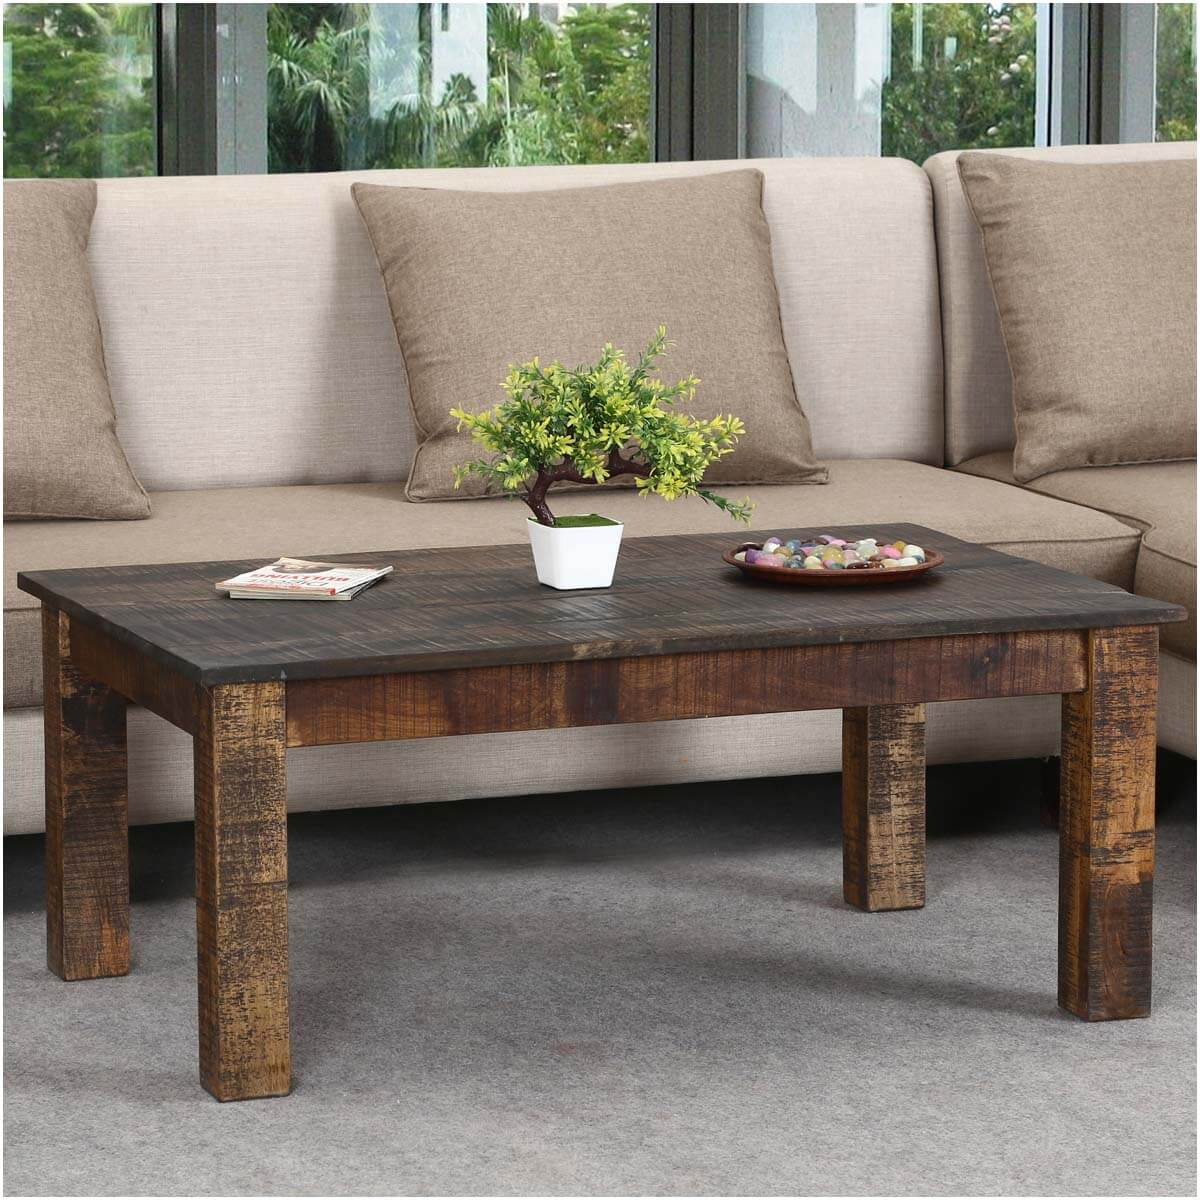 Rustic real mango wood 43 long livingroom coffee table for Long rustic table